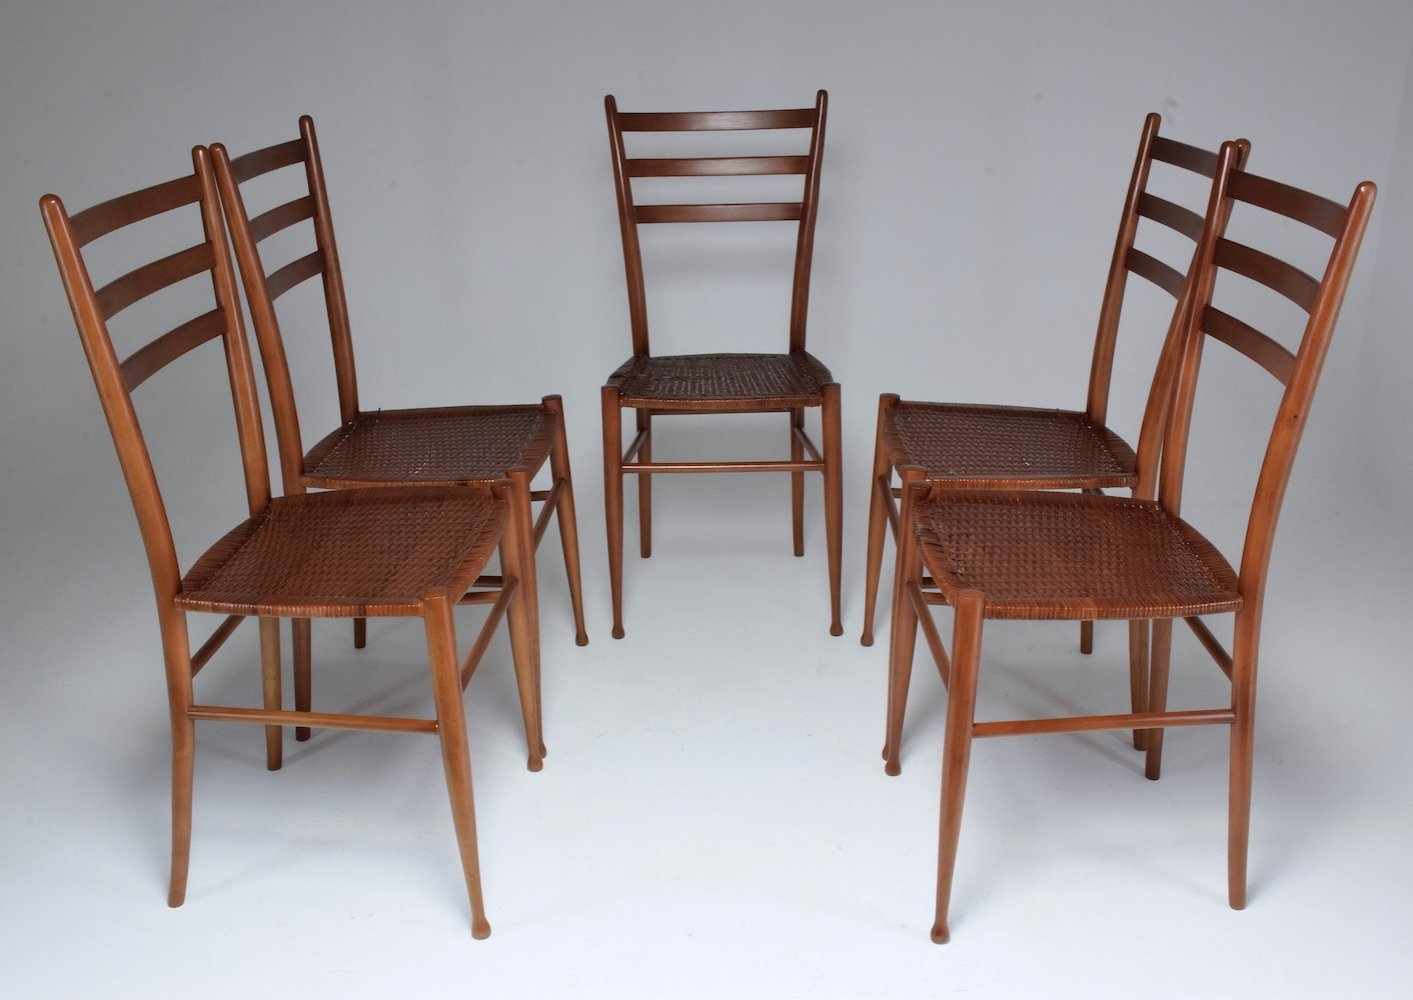 Antique Dining Room Furniture 1930 Wild Country Fine Arts